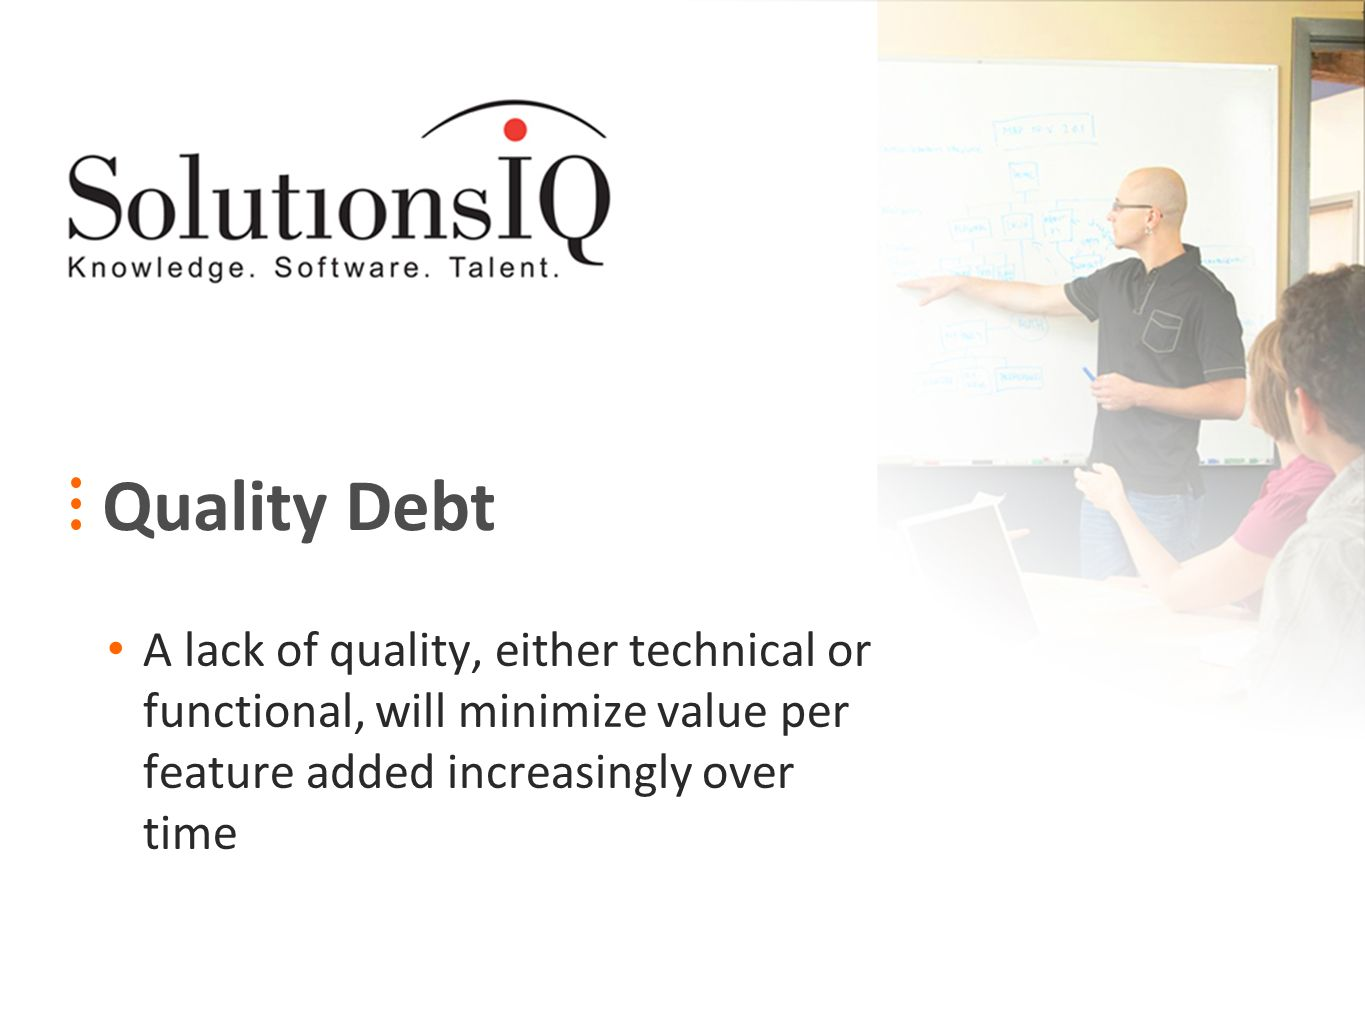 Quality Debt A lack of quality, either technical or functional, will minimize value per feature added increasingly over time